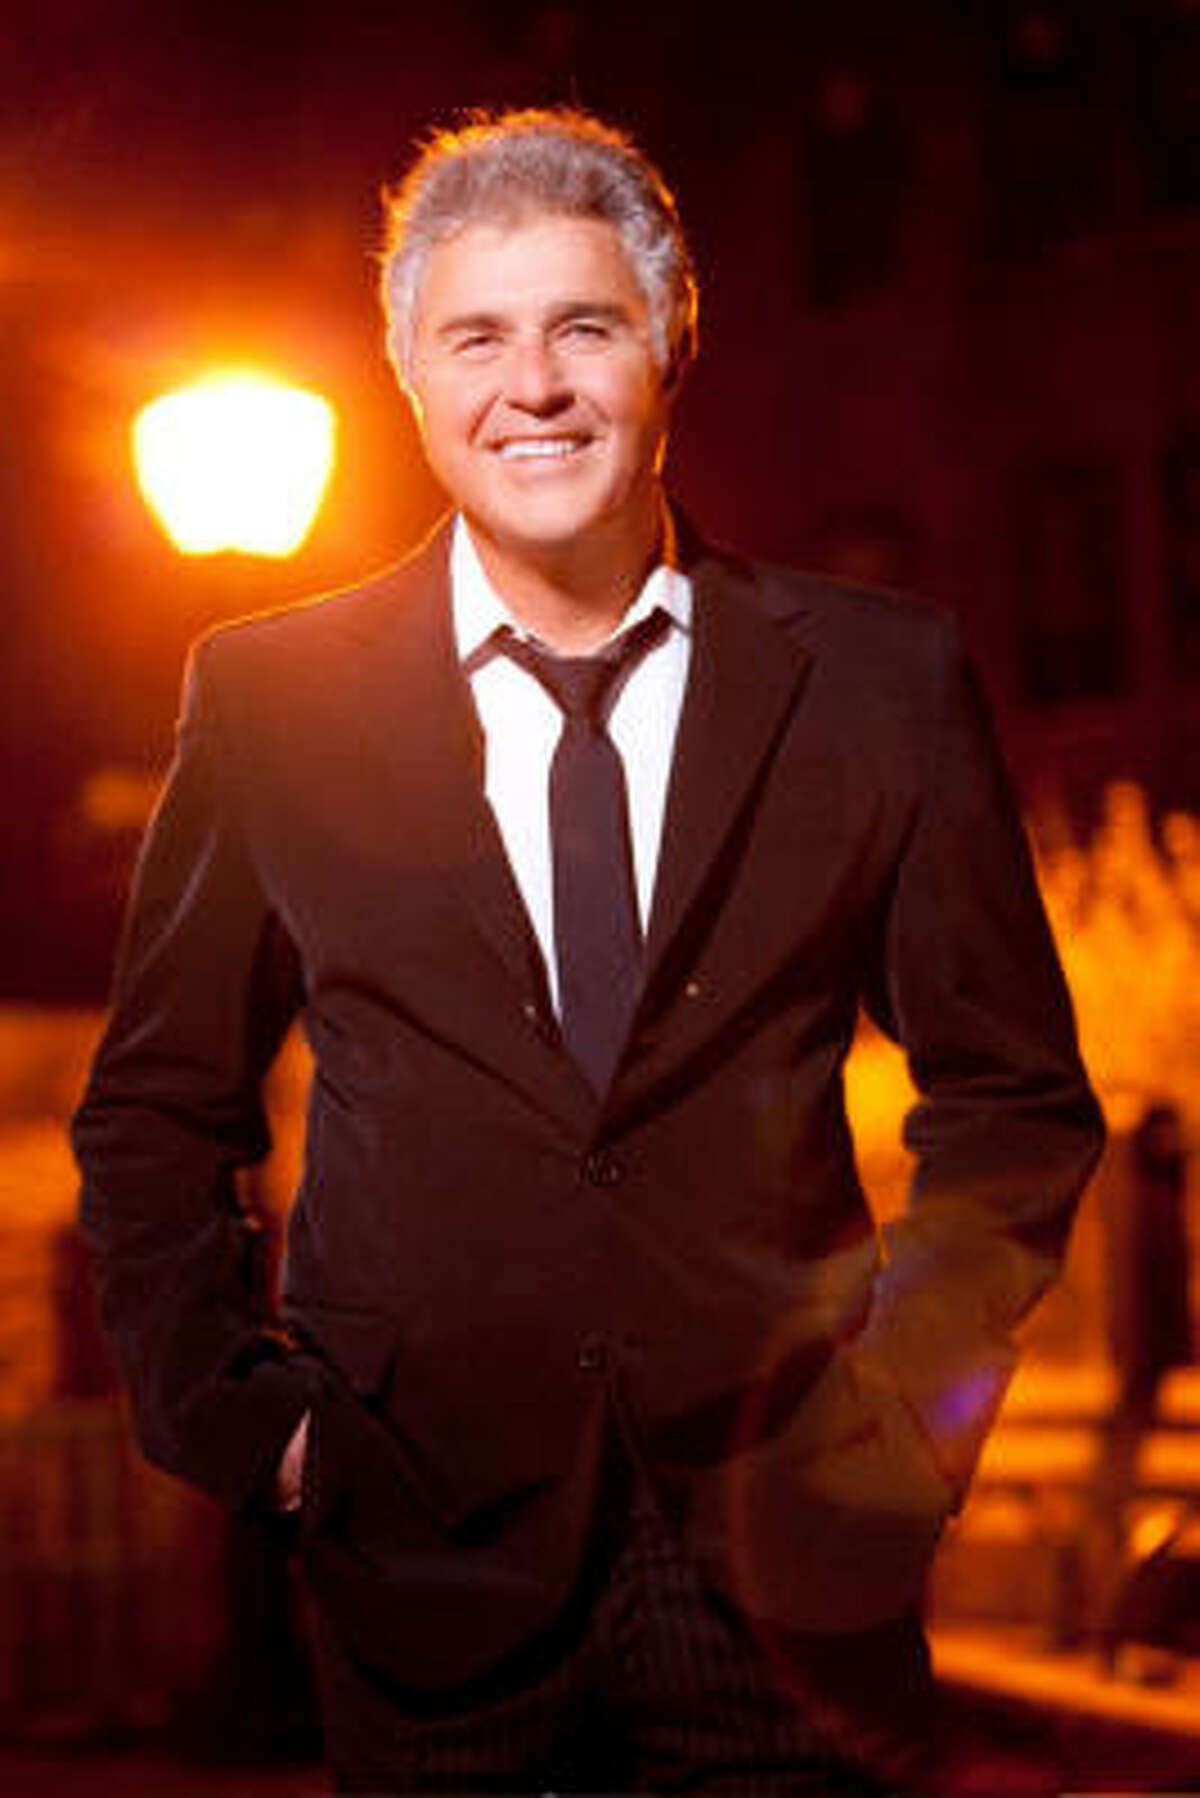 Steve Tyrell credits Steve Martin for helping launch his music career when Tyrell's version of The Way You Look Tonight was used in The Father of the Bride, which starred Martin.